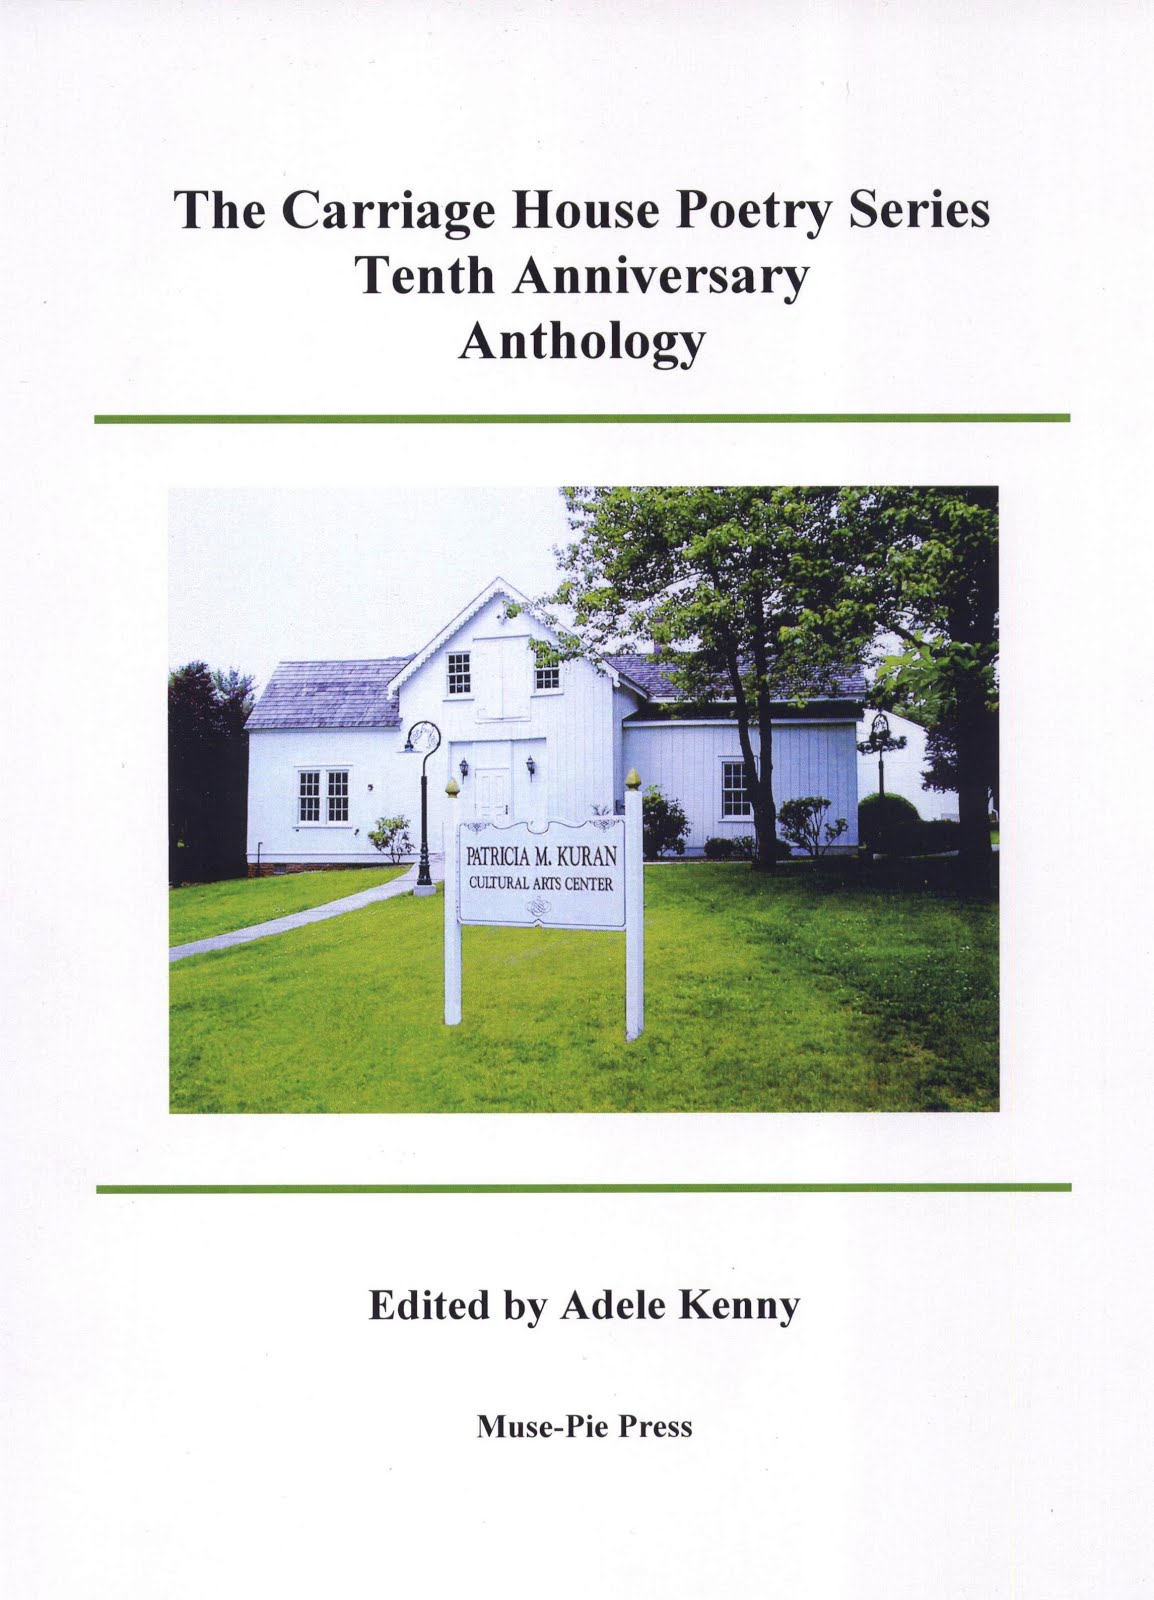 Tenth Anniversary Anthology